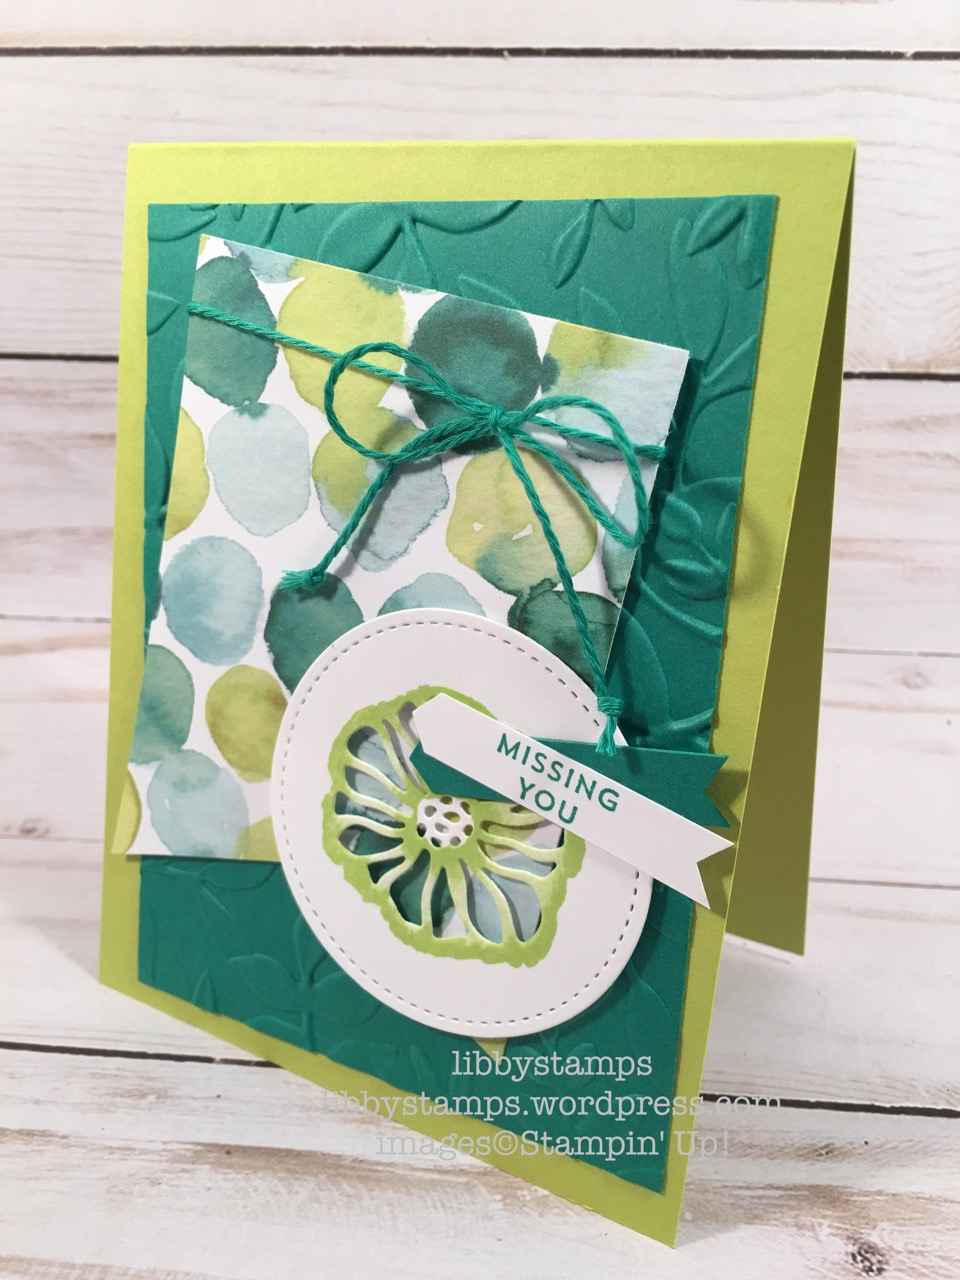 libbystamps, stampin up, Classic LabelPunch, Eclectic Layers Thinlits, Layered Leaves Dynamic EF, Oh So Eclectic, Oh So Eclectic Bundle, Stitched Shapes Framelits